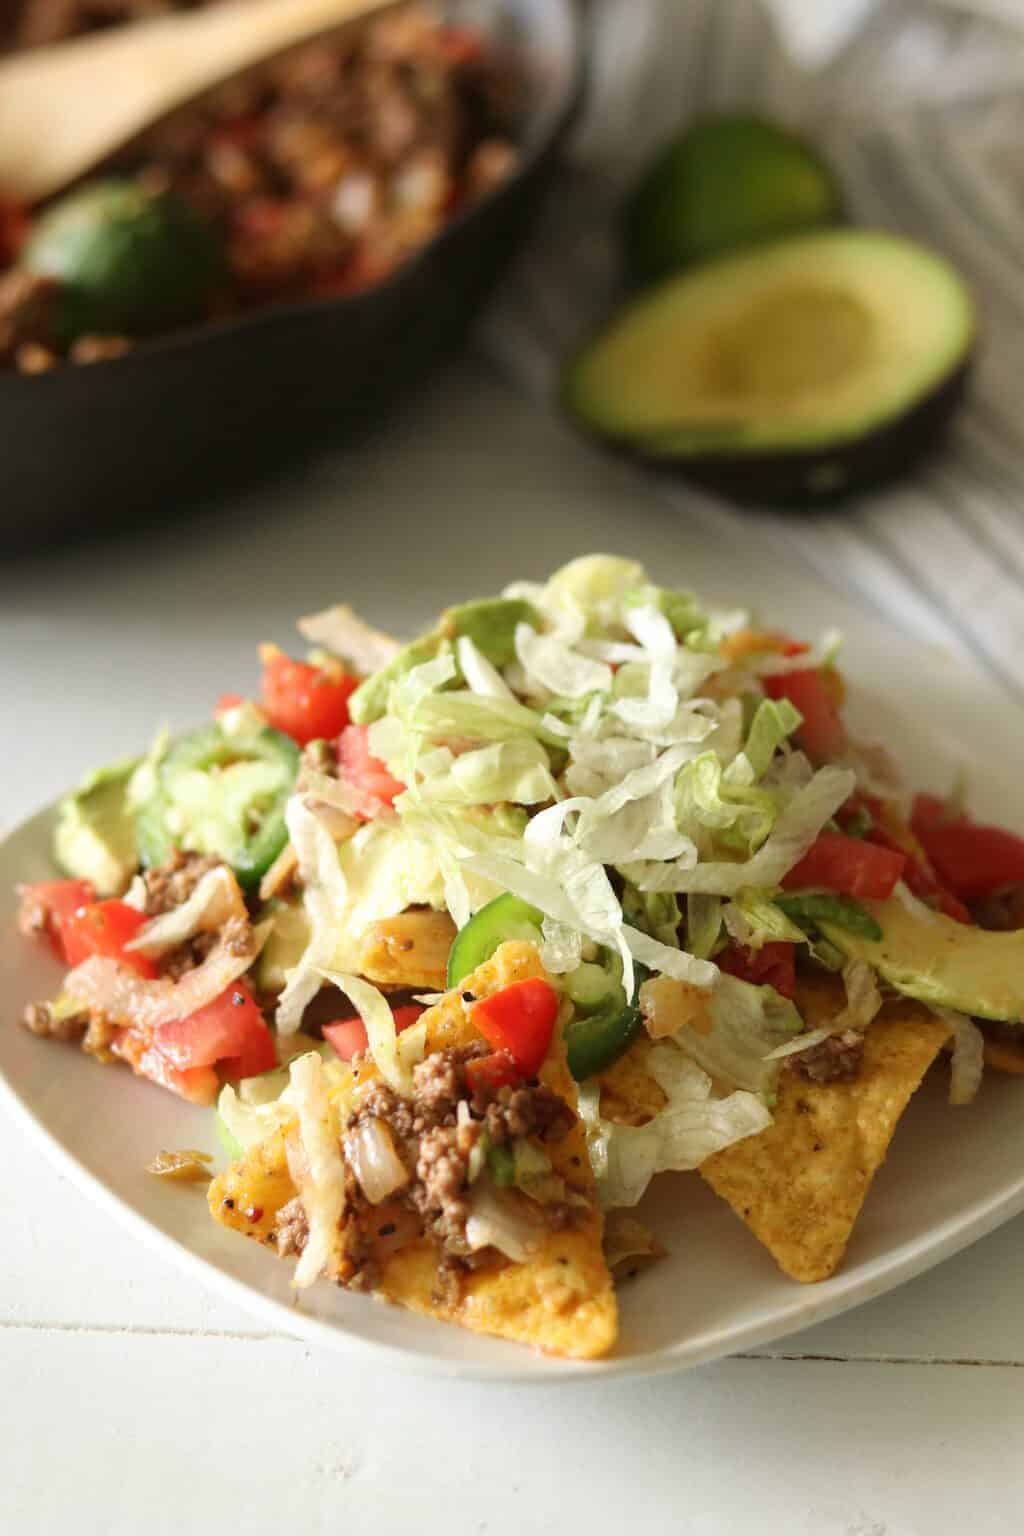 Paleo nachos topped with lettuce